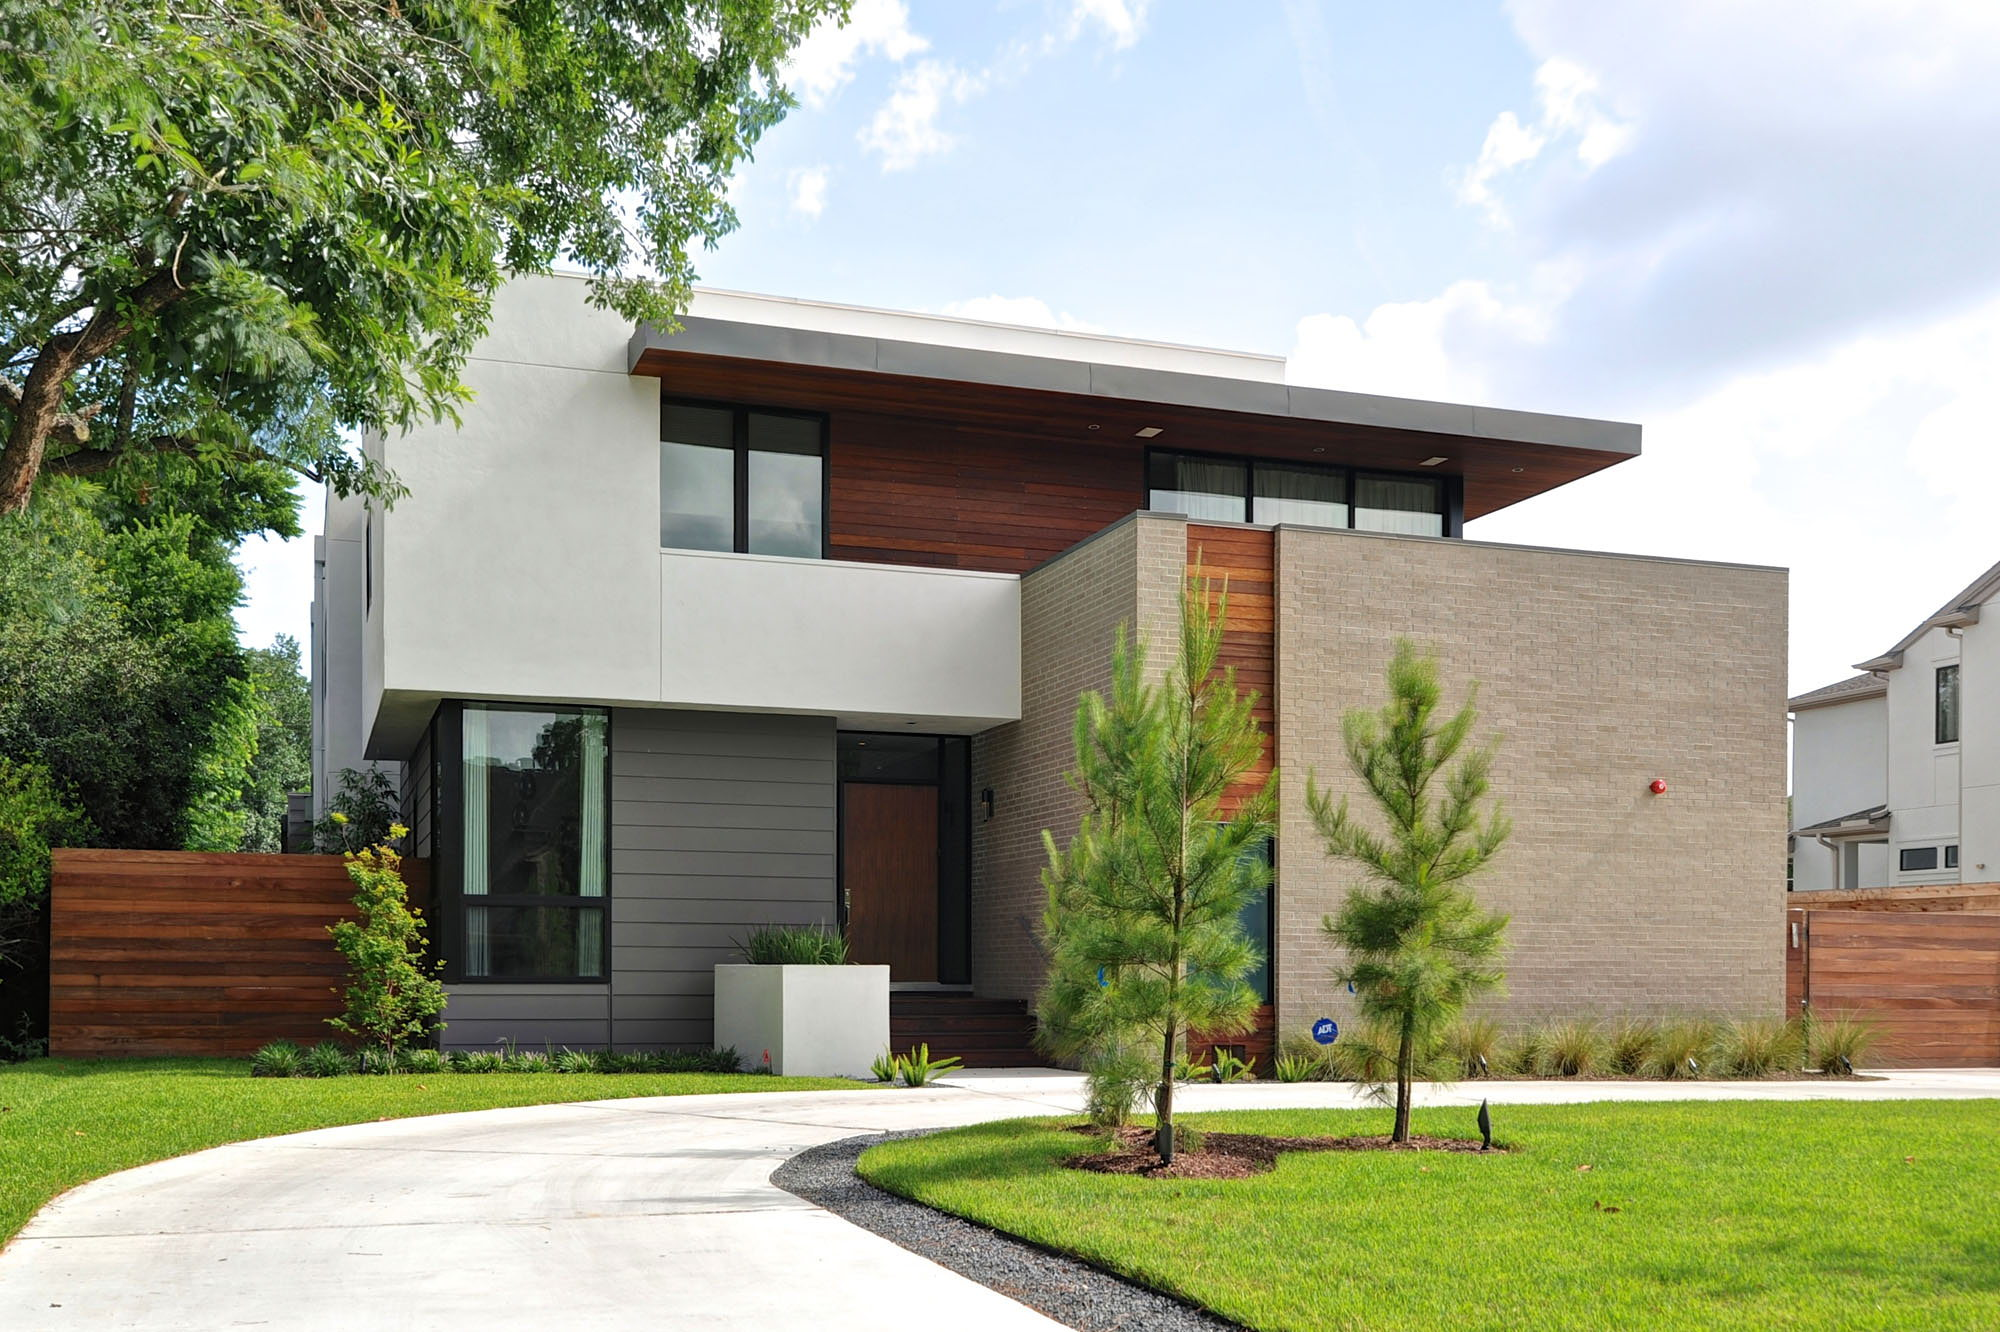 Three Car Garage Modern House In Houston From Architectural Firm Studiomet